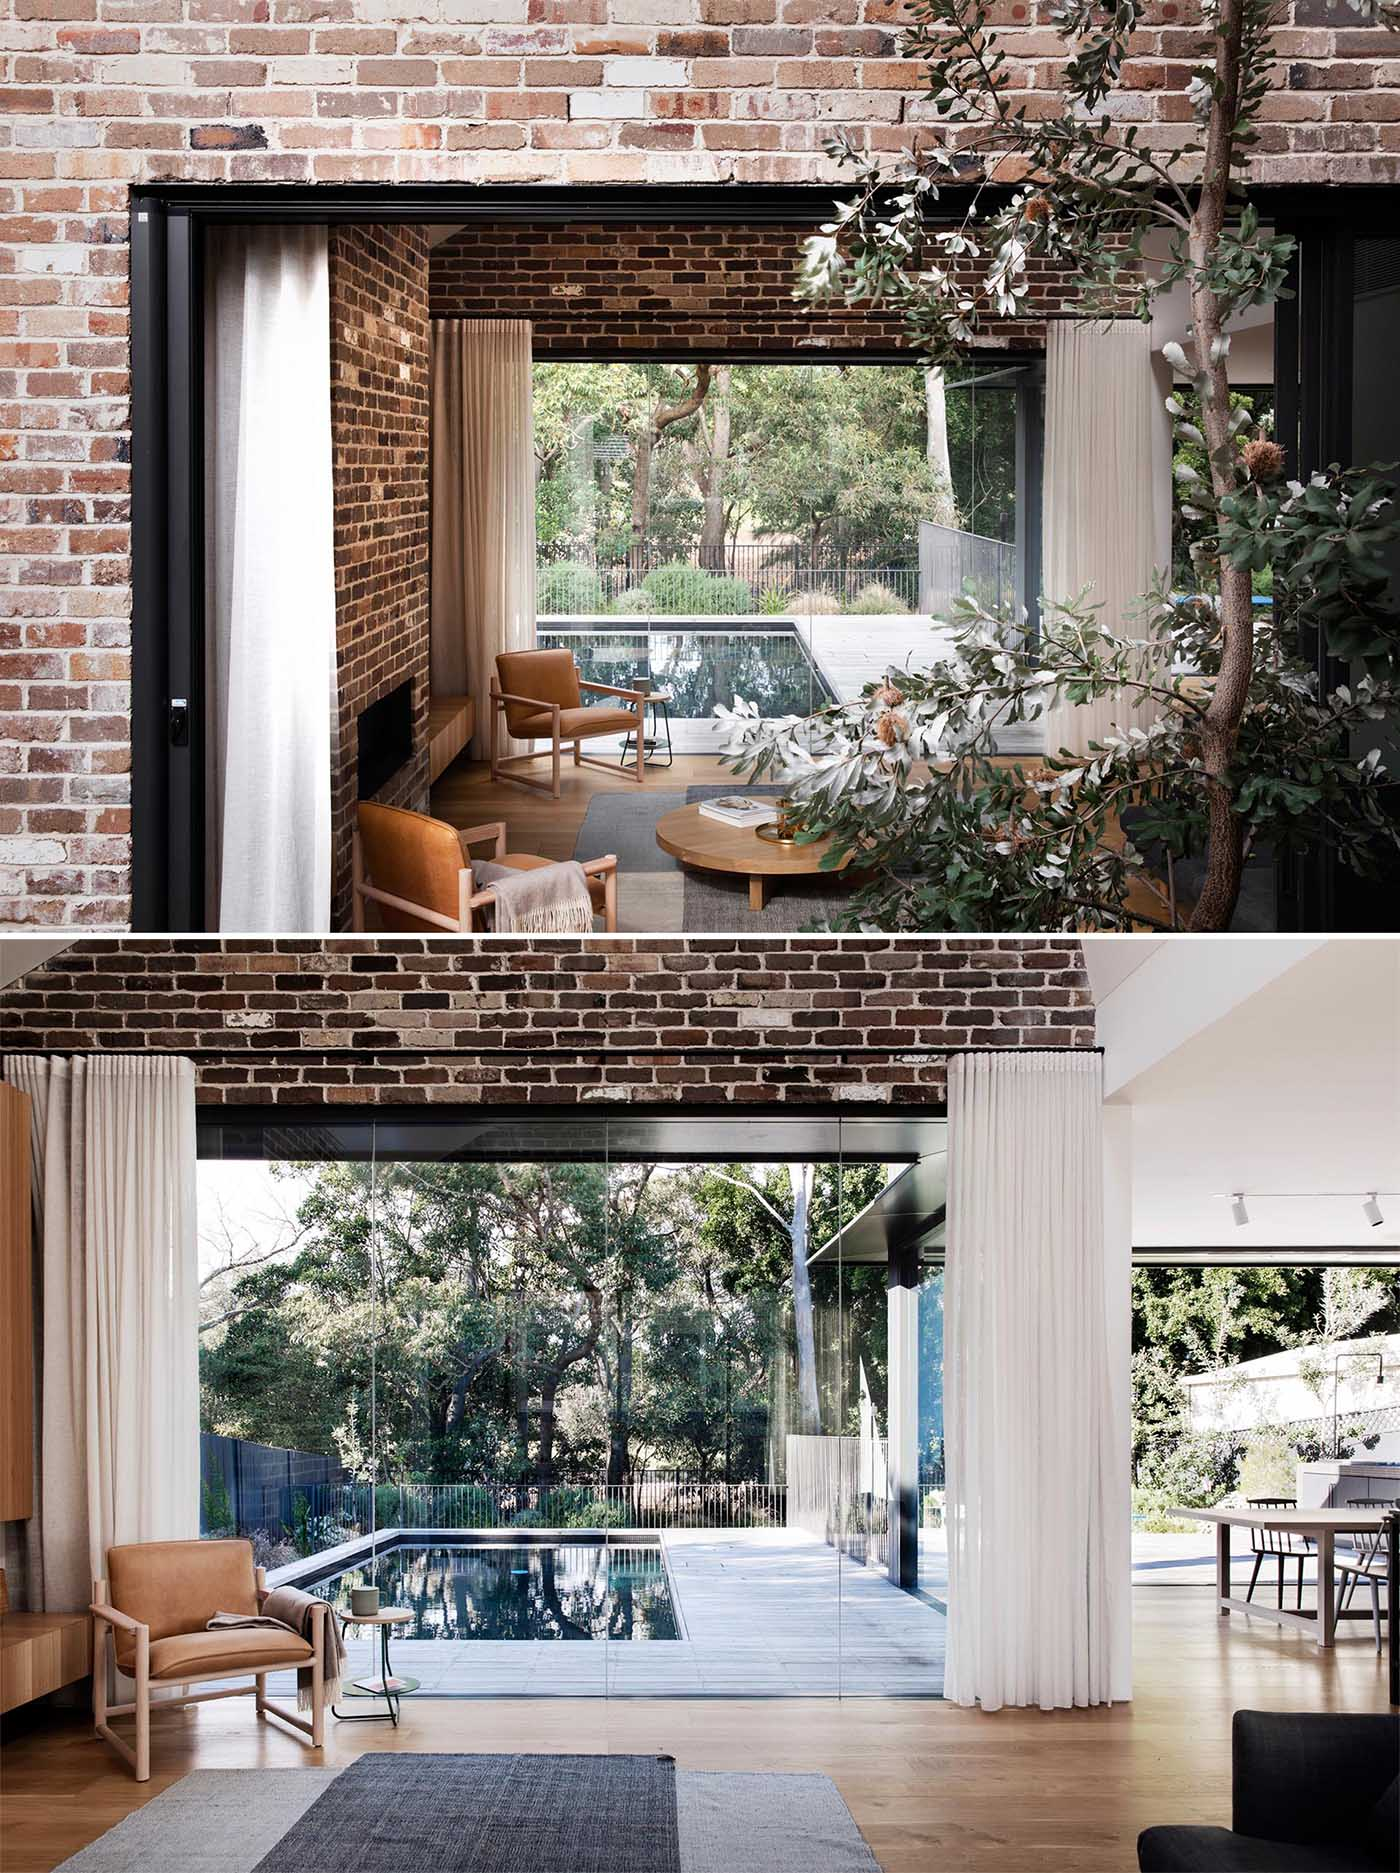 An additional glass wall in living room of a new home new addition provides views of the pool, while the opposite wall opens to a small courtyard with water-wise Australian native plants.